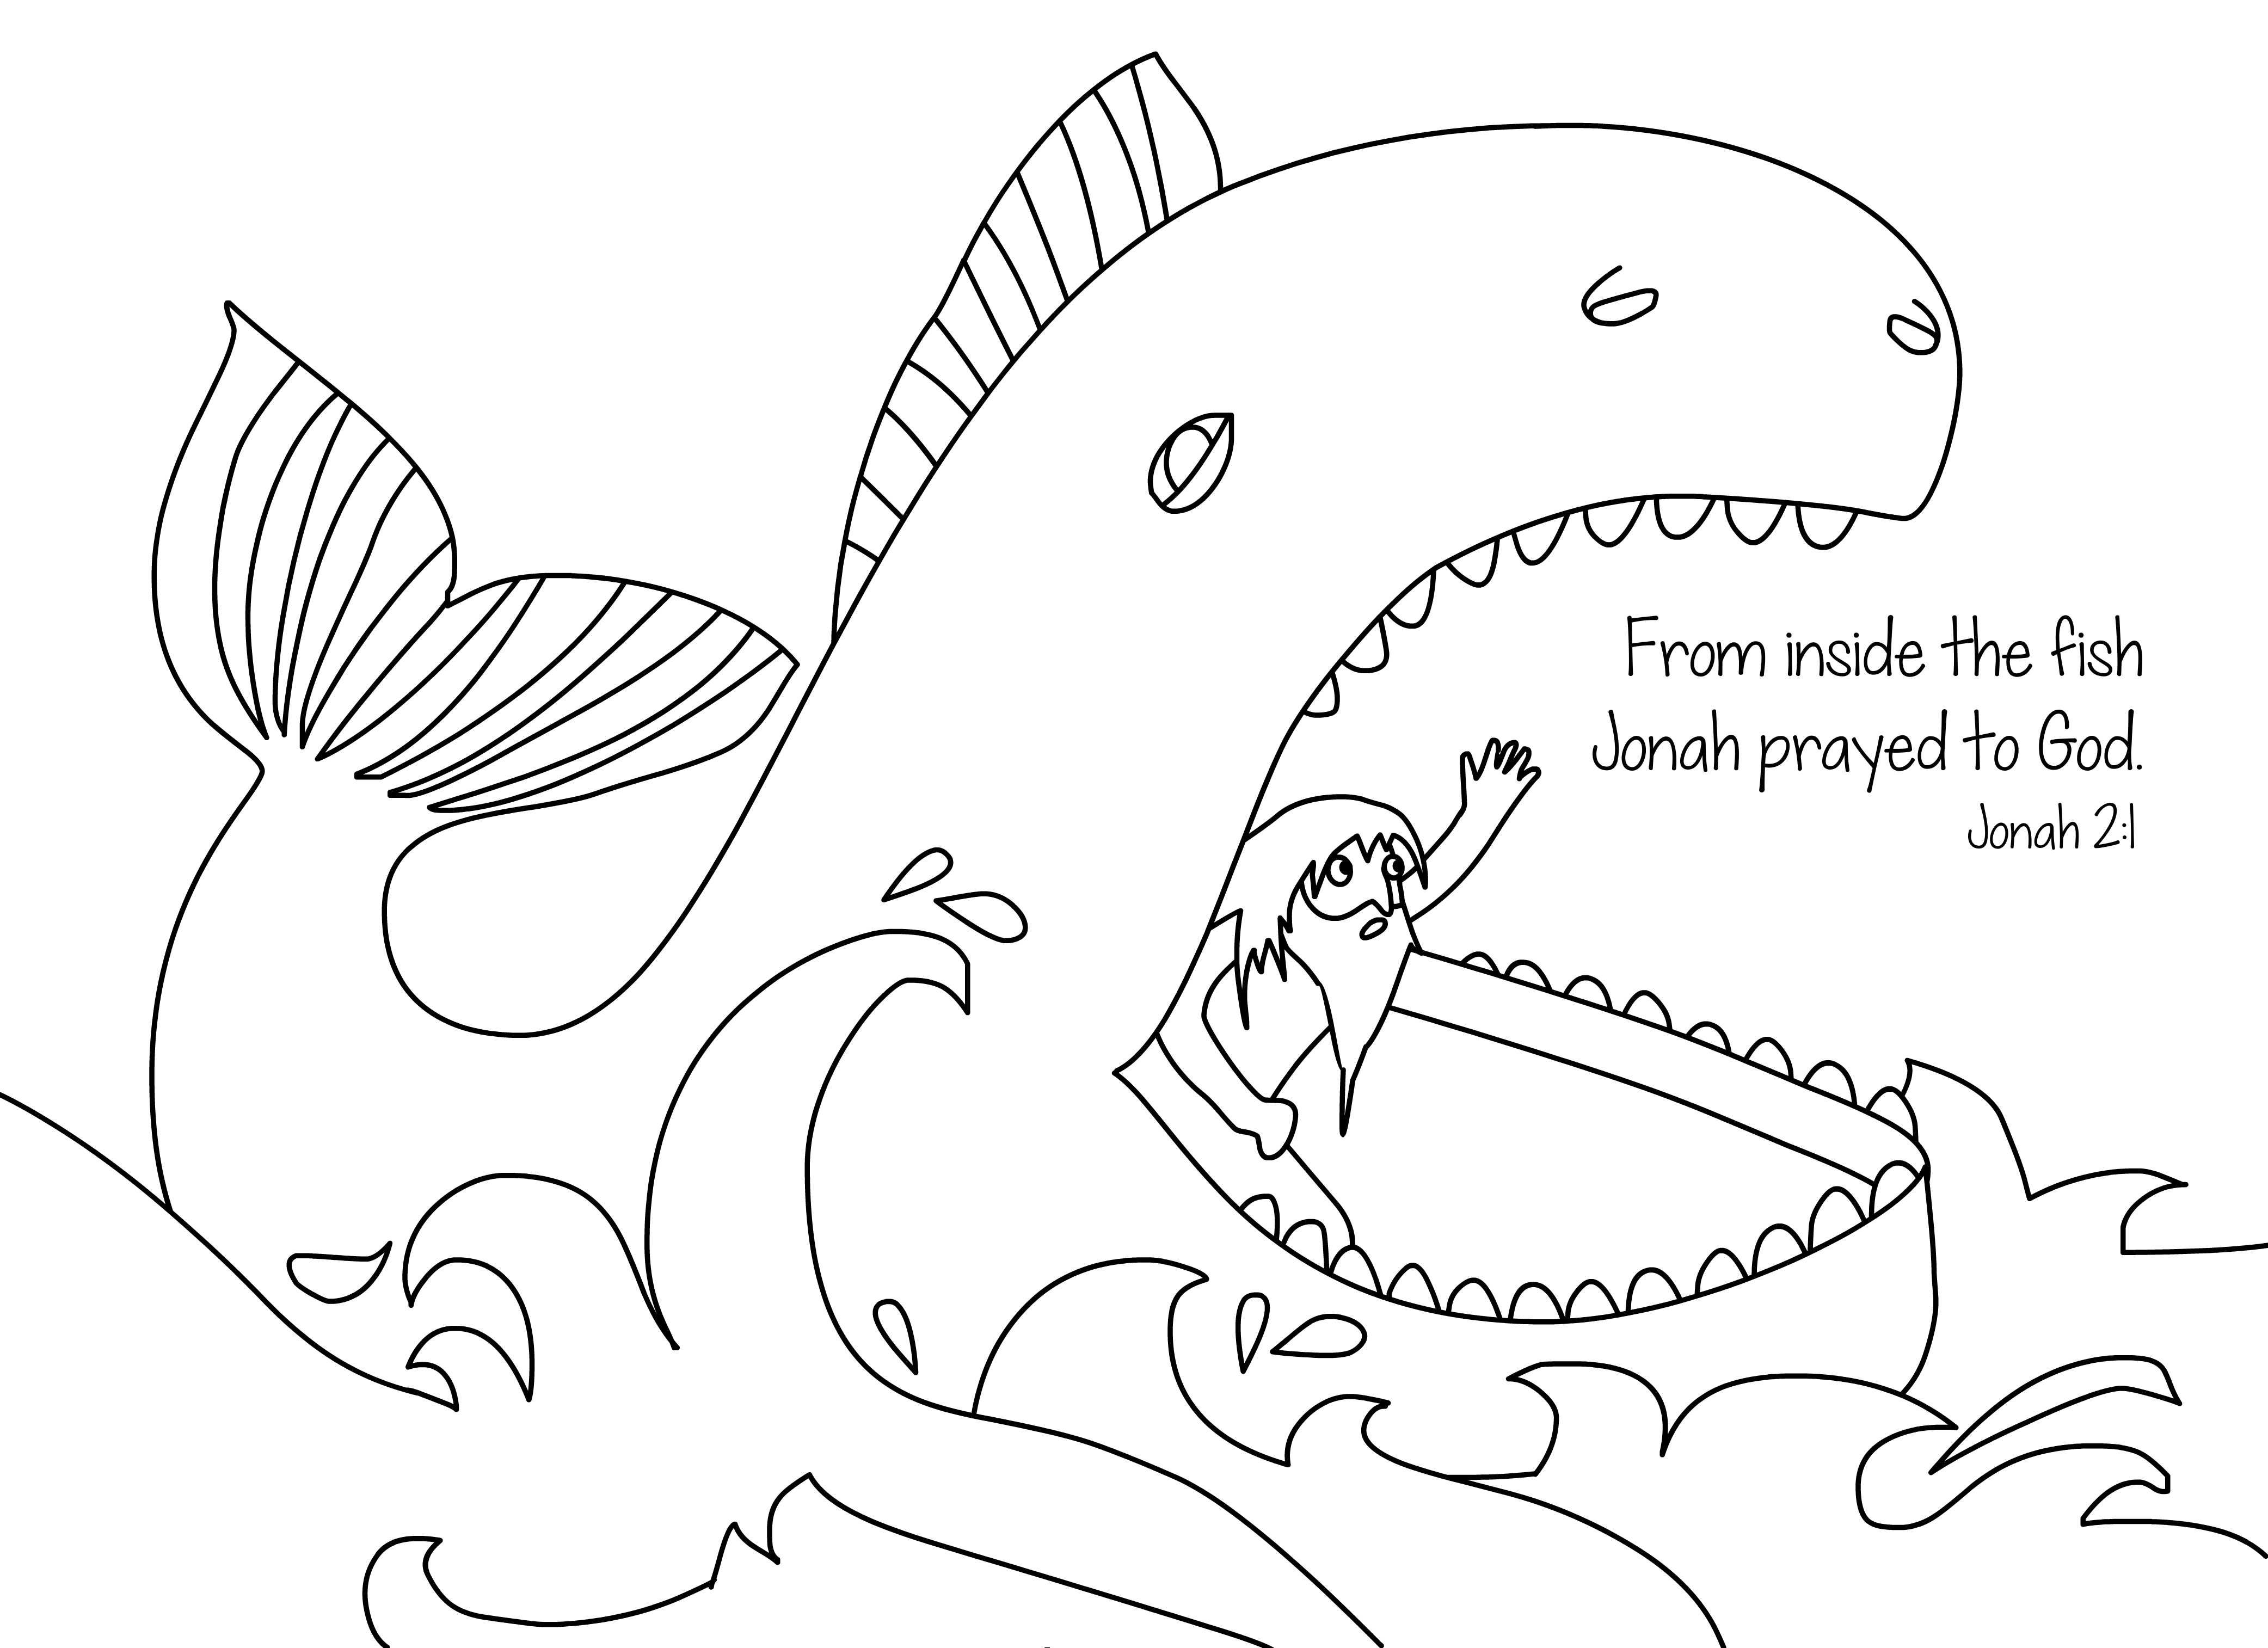 Orca Whale Coloring Pages (49 Images) - Class Teacher